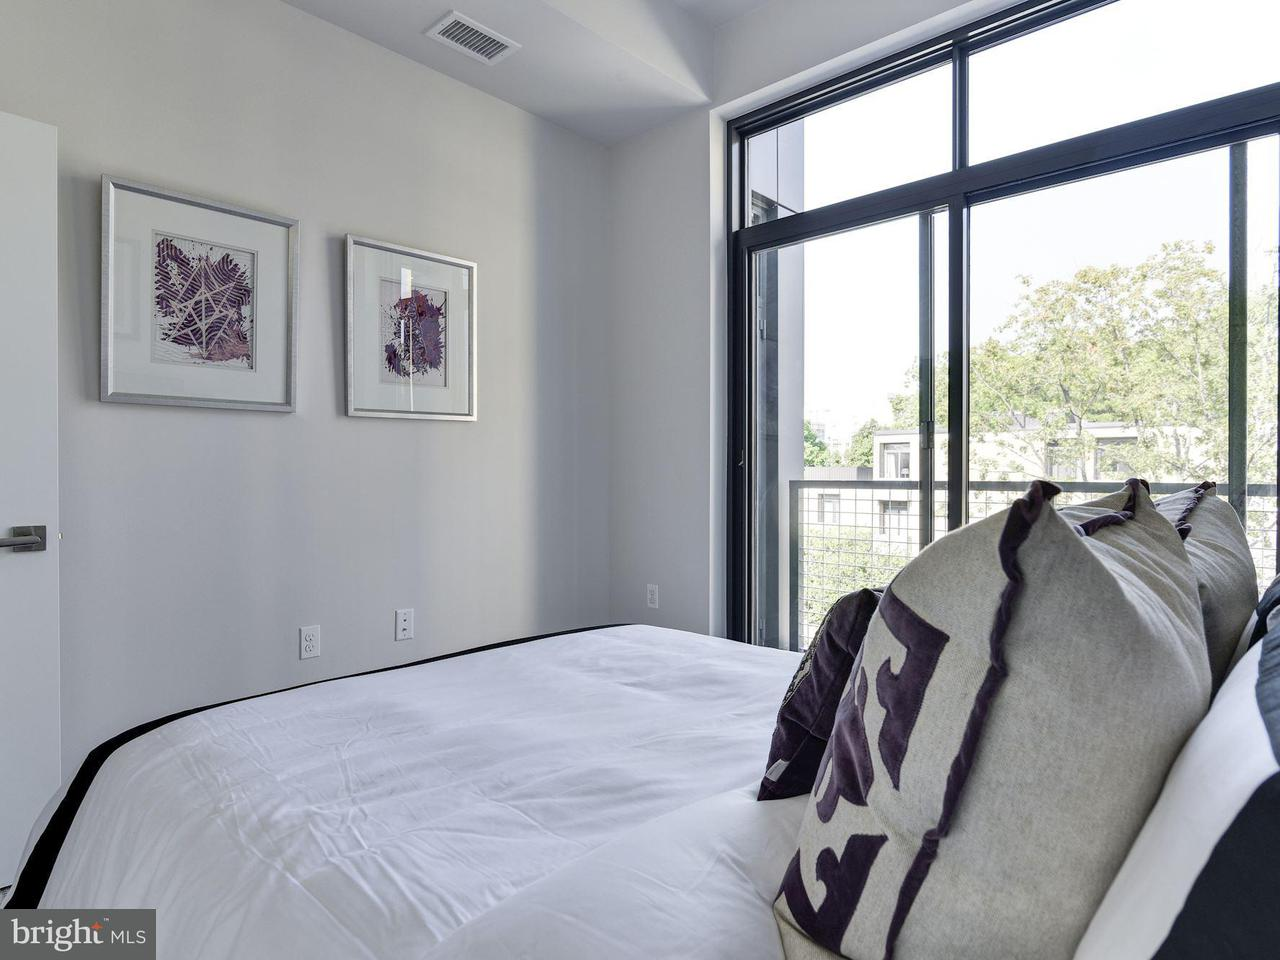 Additional photo for property listing at 525 WATER ST SW #424 525 WATER ST SW #424 Washington, District Of Columbia 20024 United States